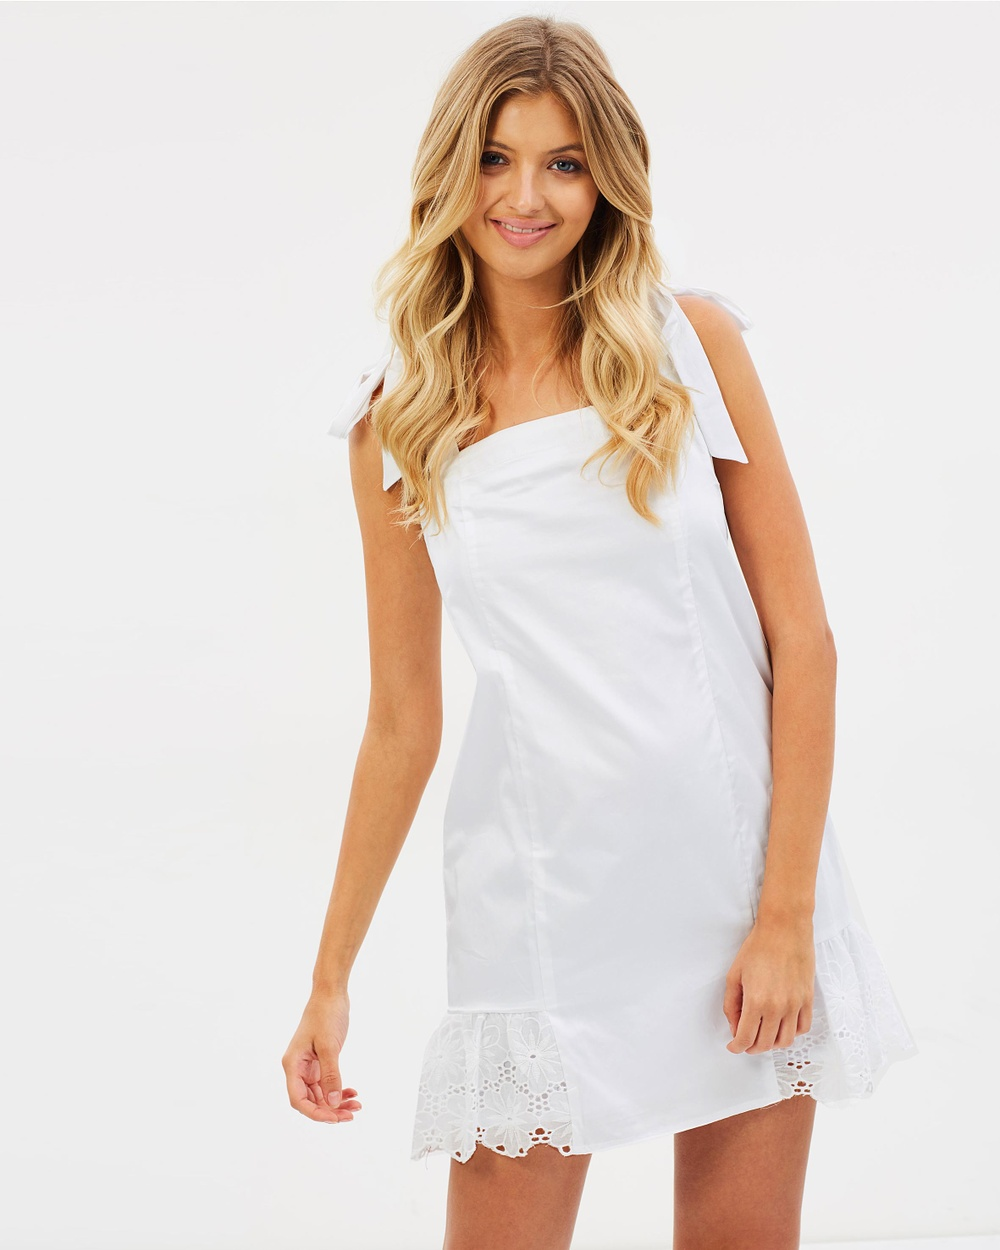 Atmos & Here ICONIC EXCLUSIVE Matilda Mini Dress Dresses White ICONIC EXCLUSIVE Matilda Mini Dress